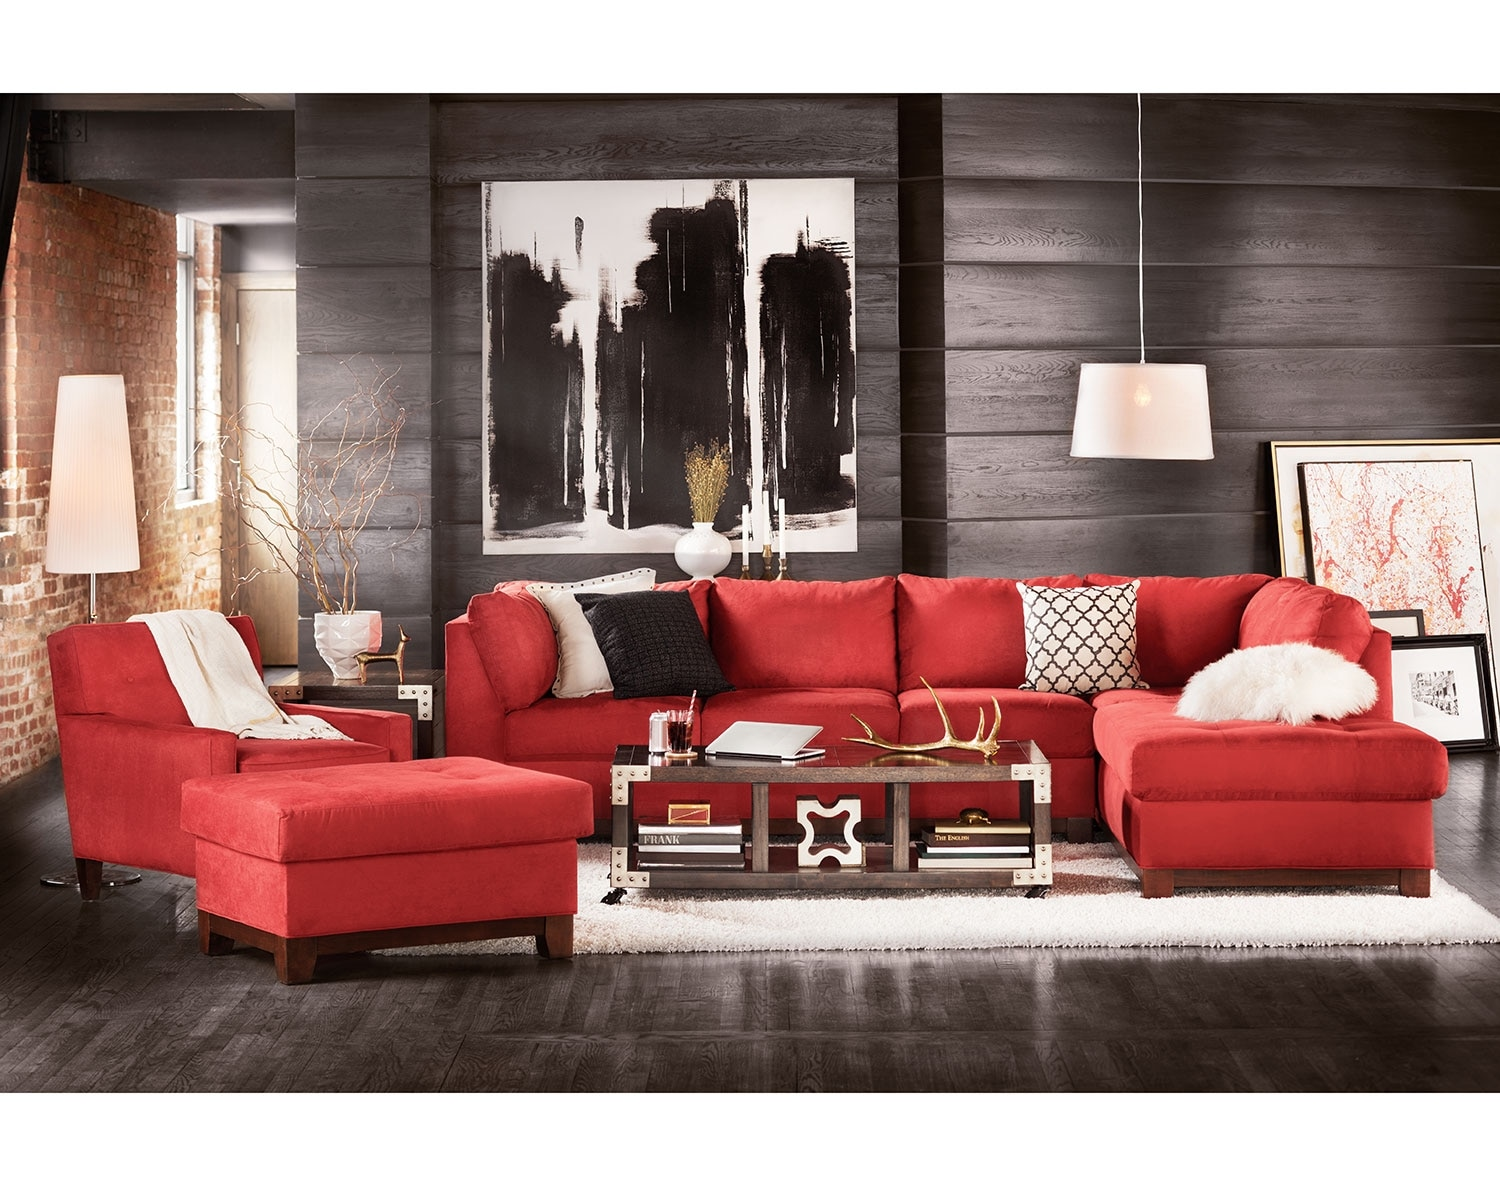 Best Selling Furniture American Signature Furniture ~ Sofa Bed American Furniture